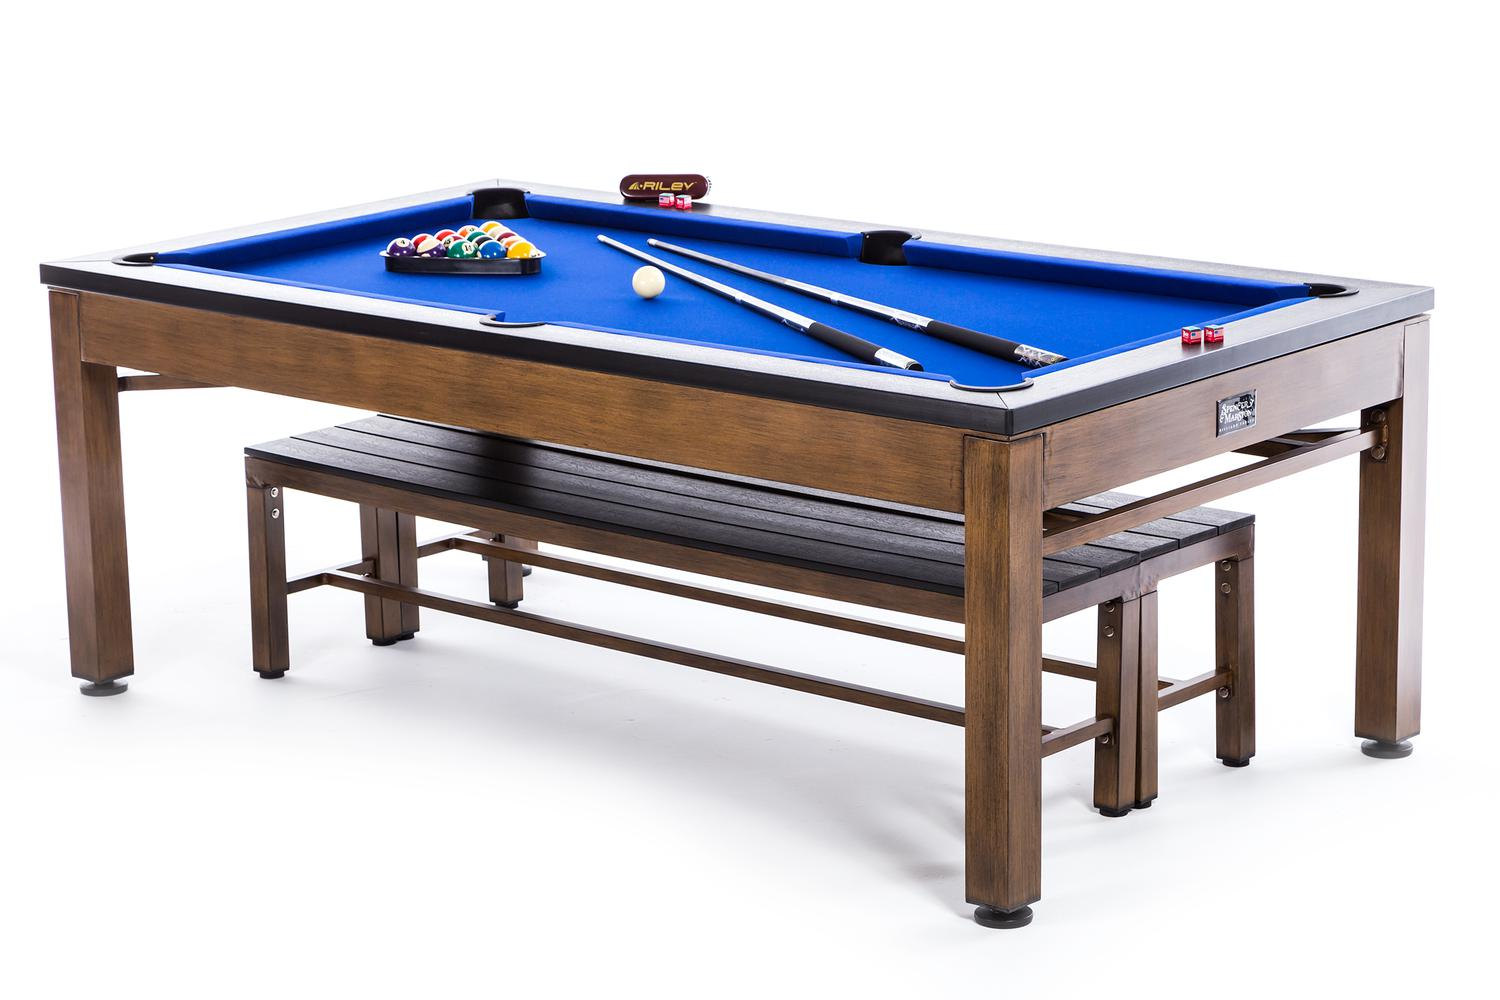 Spencer Marston Tucson Outdoor Pool Table | pooltables.com